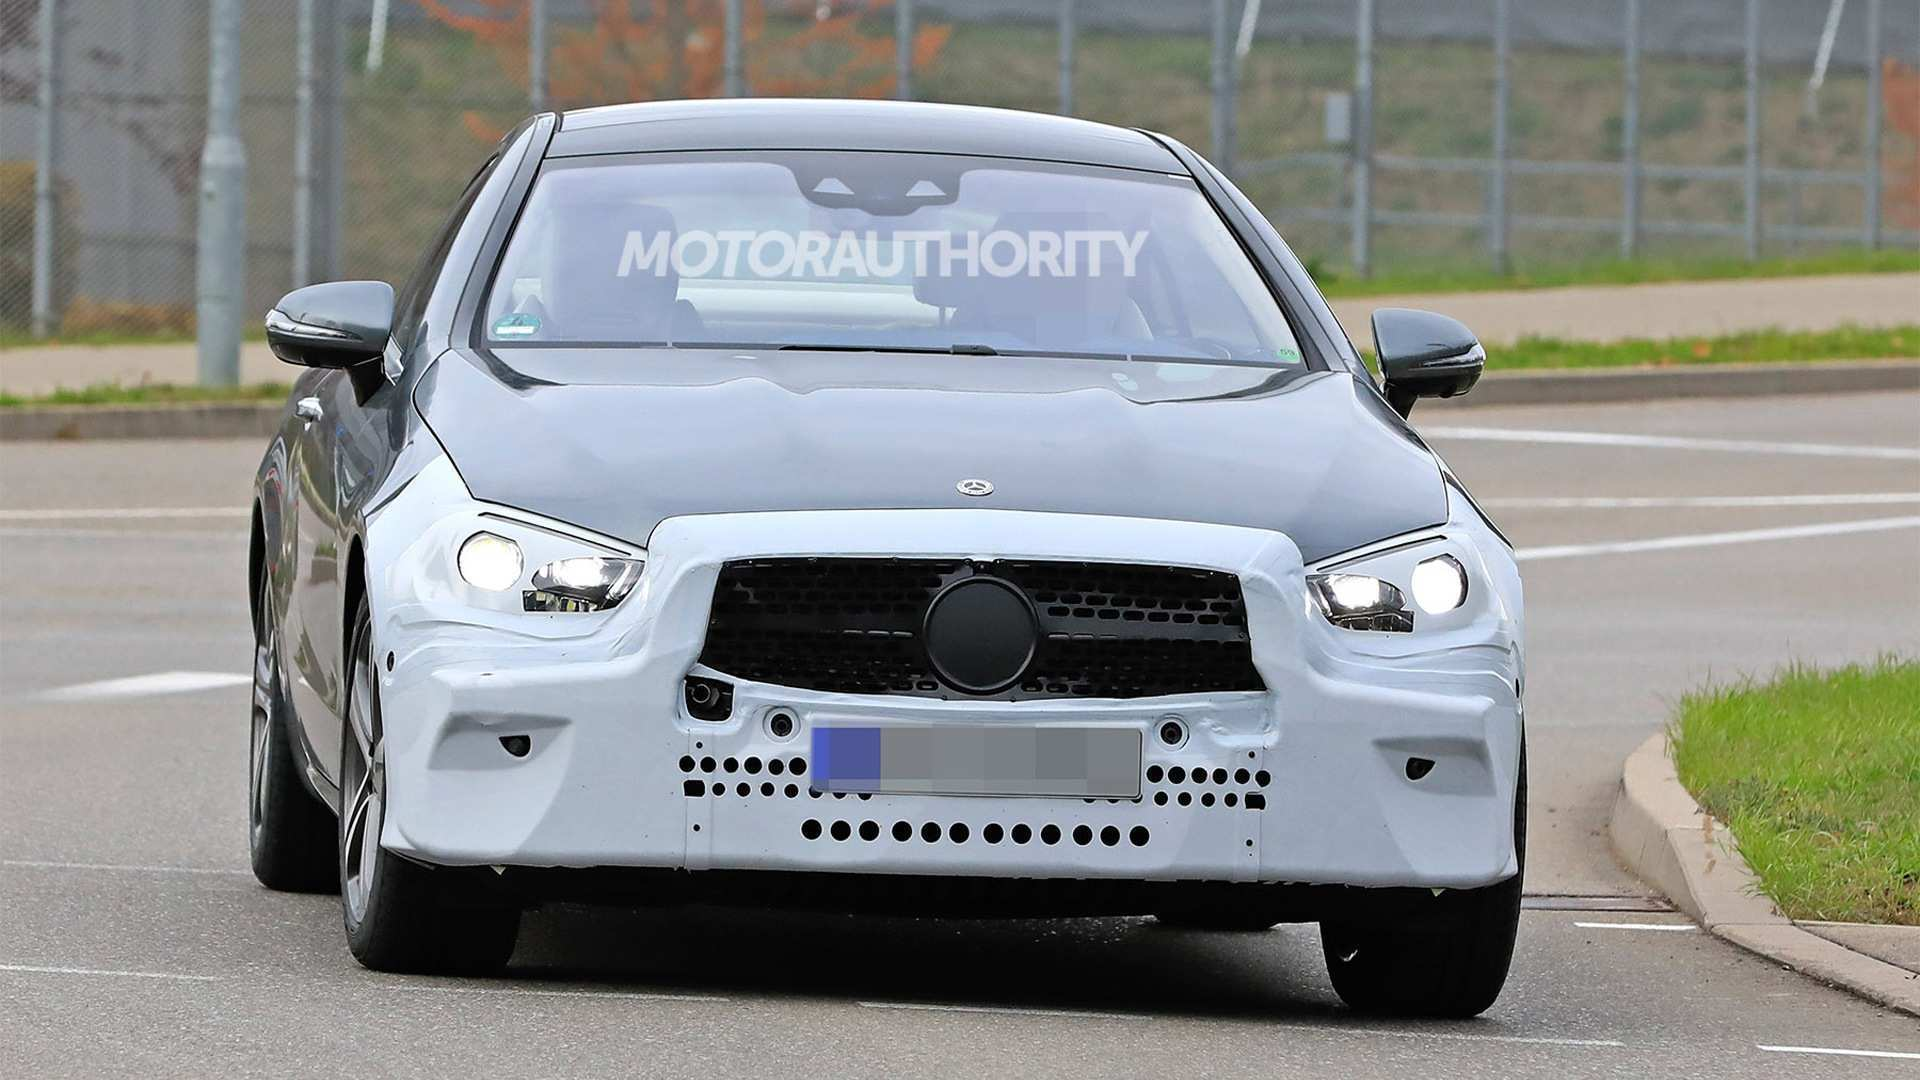 96 All New Spy Shots 2020 Mercedes E Class Price and Review by Spy Shots 2020 Mercedes E Class